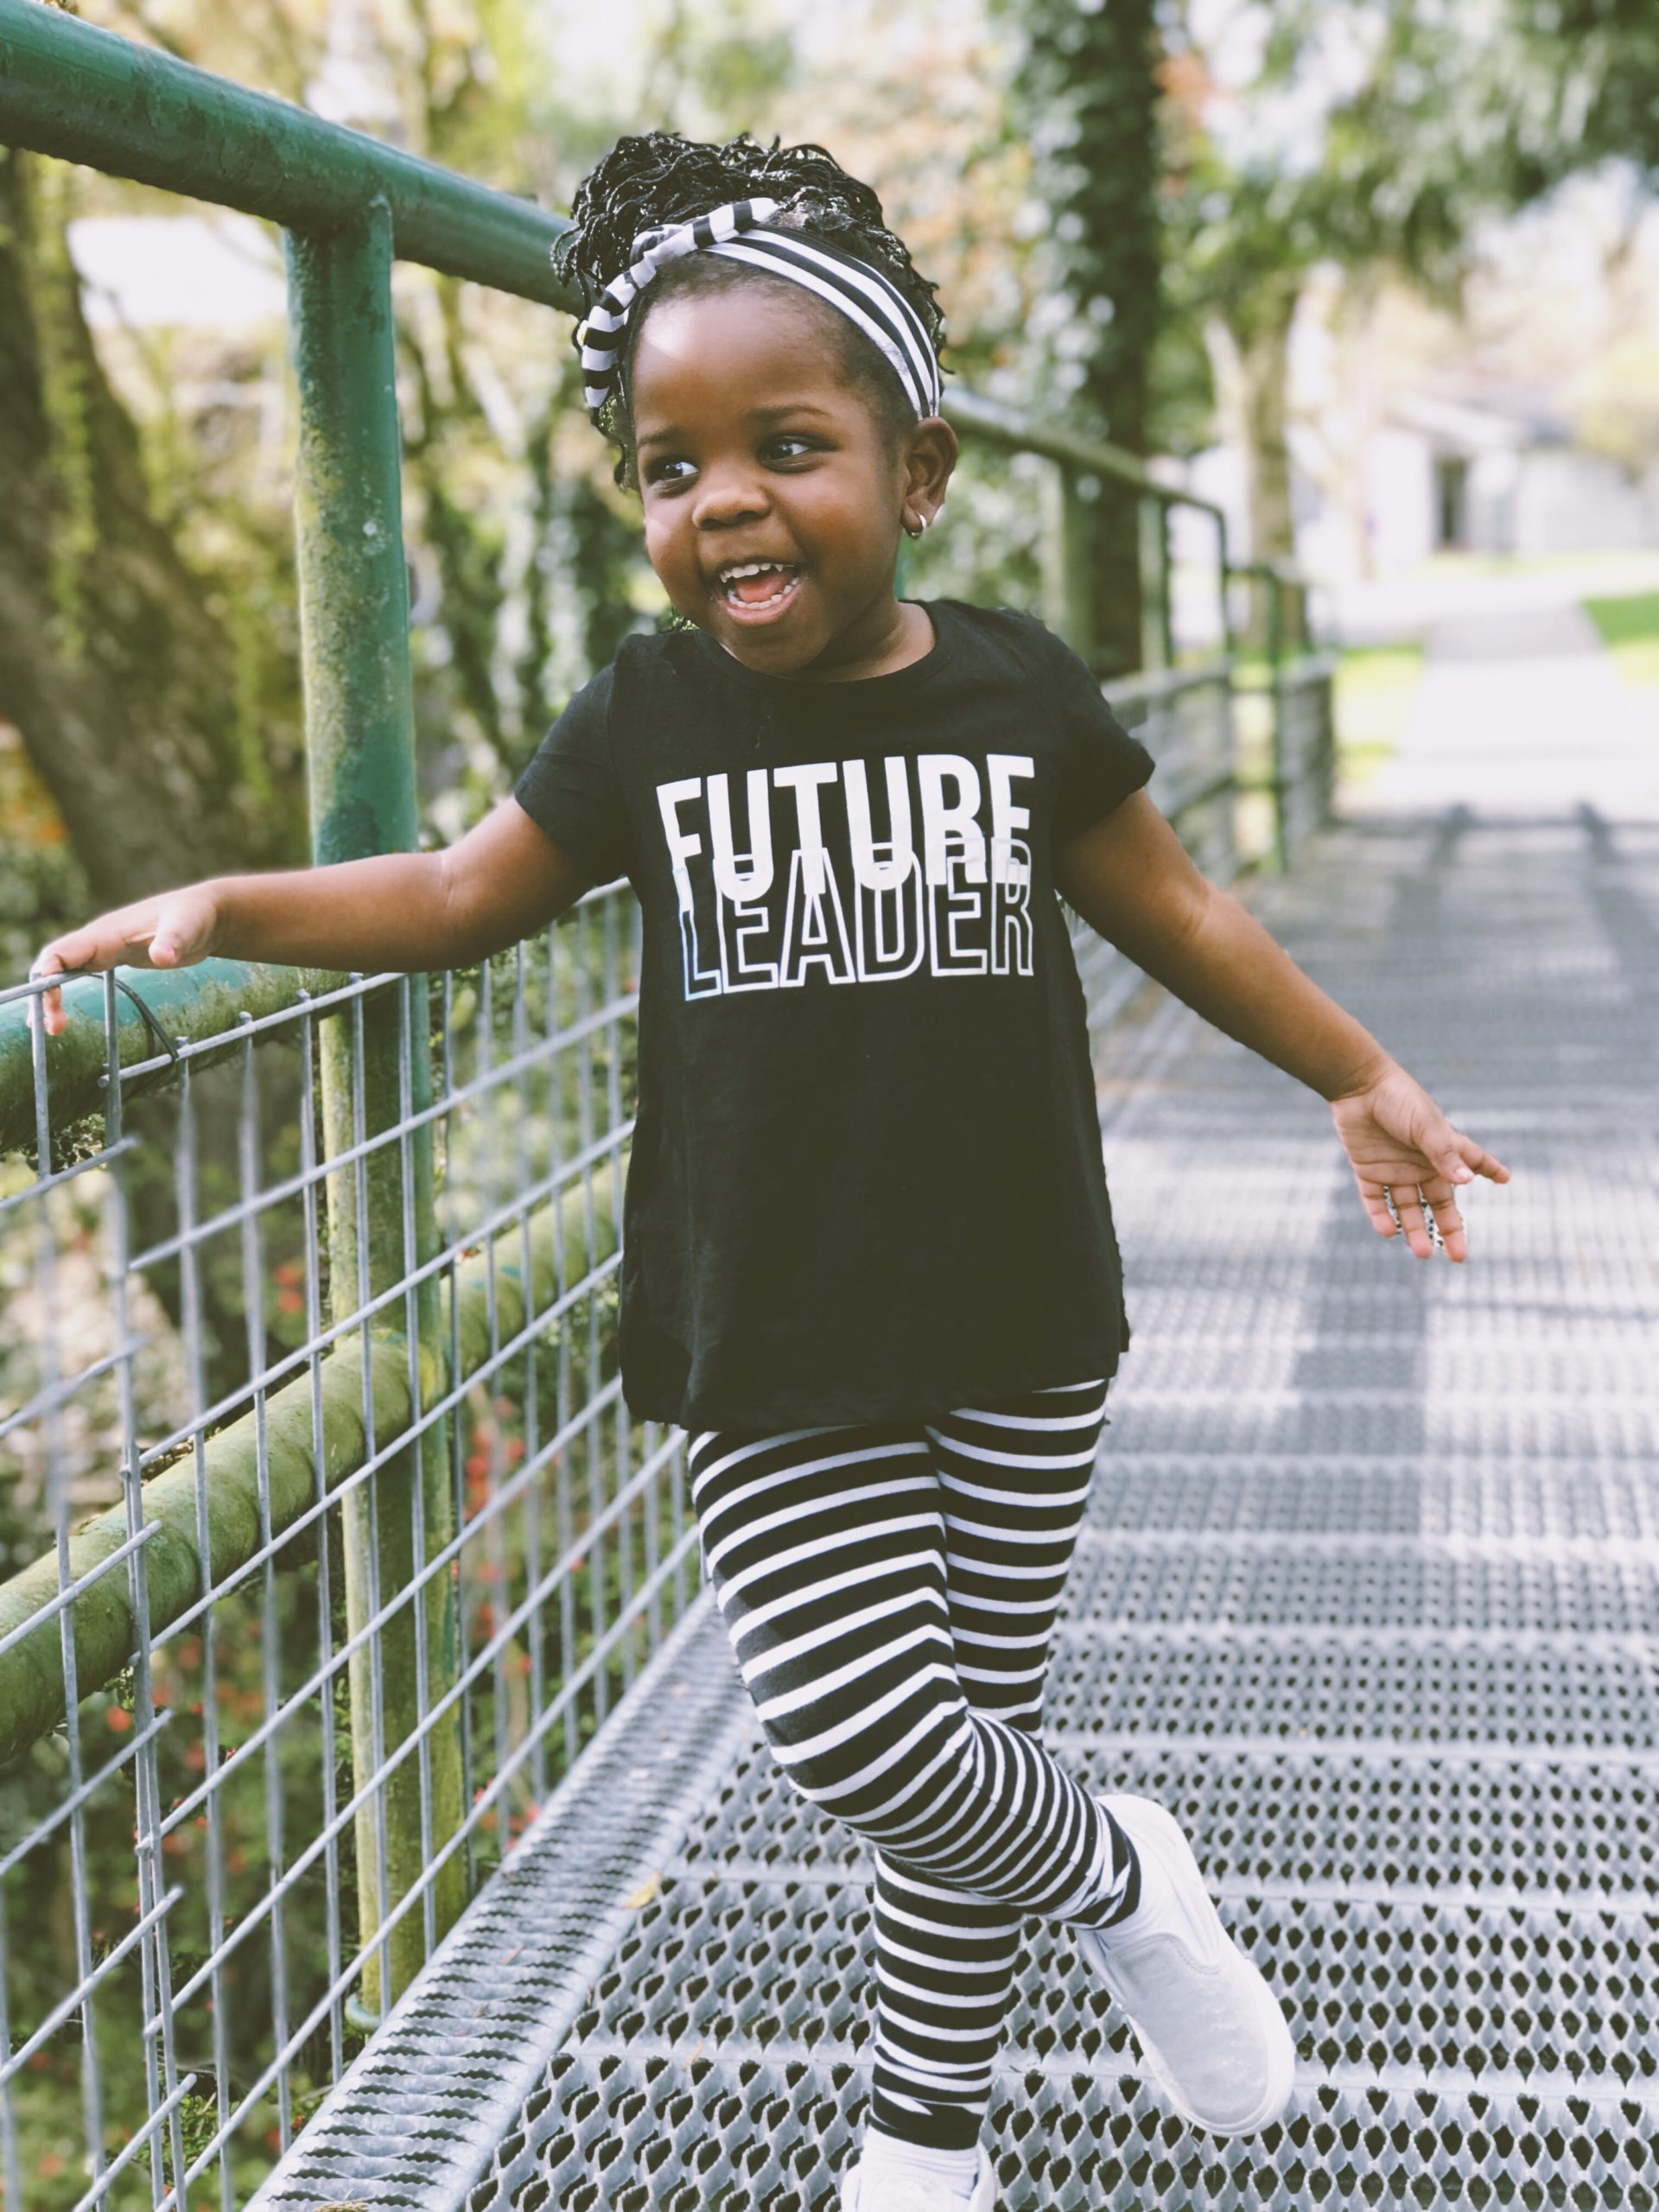 """A very young black girl wears a spunky grin, natural hair, a head wrap, and a black and white shirt that says """"Future Leader."""""""